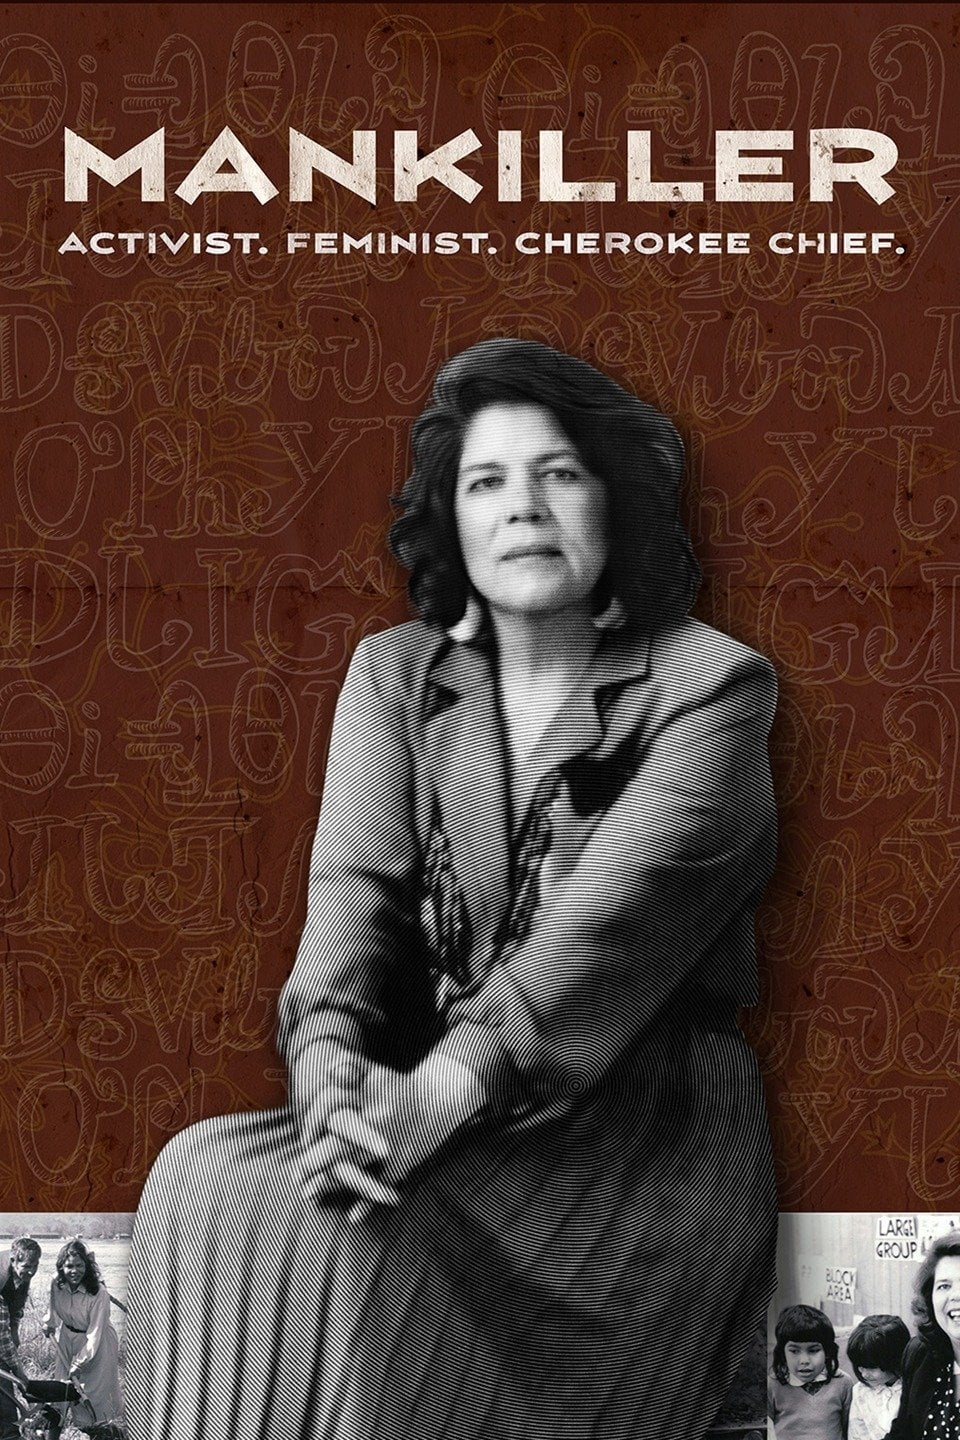 watch Mankiller 2017 online free